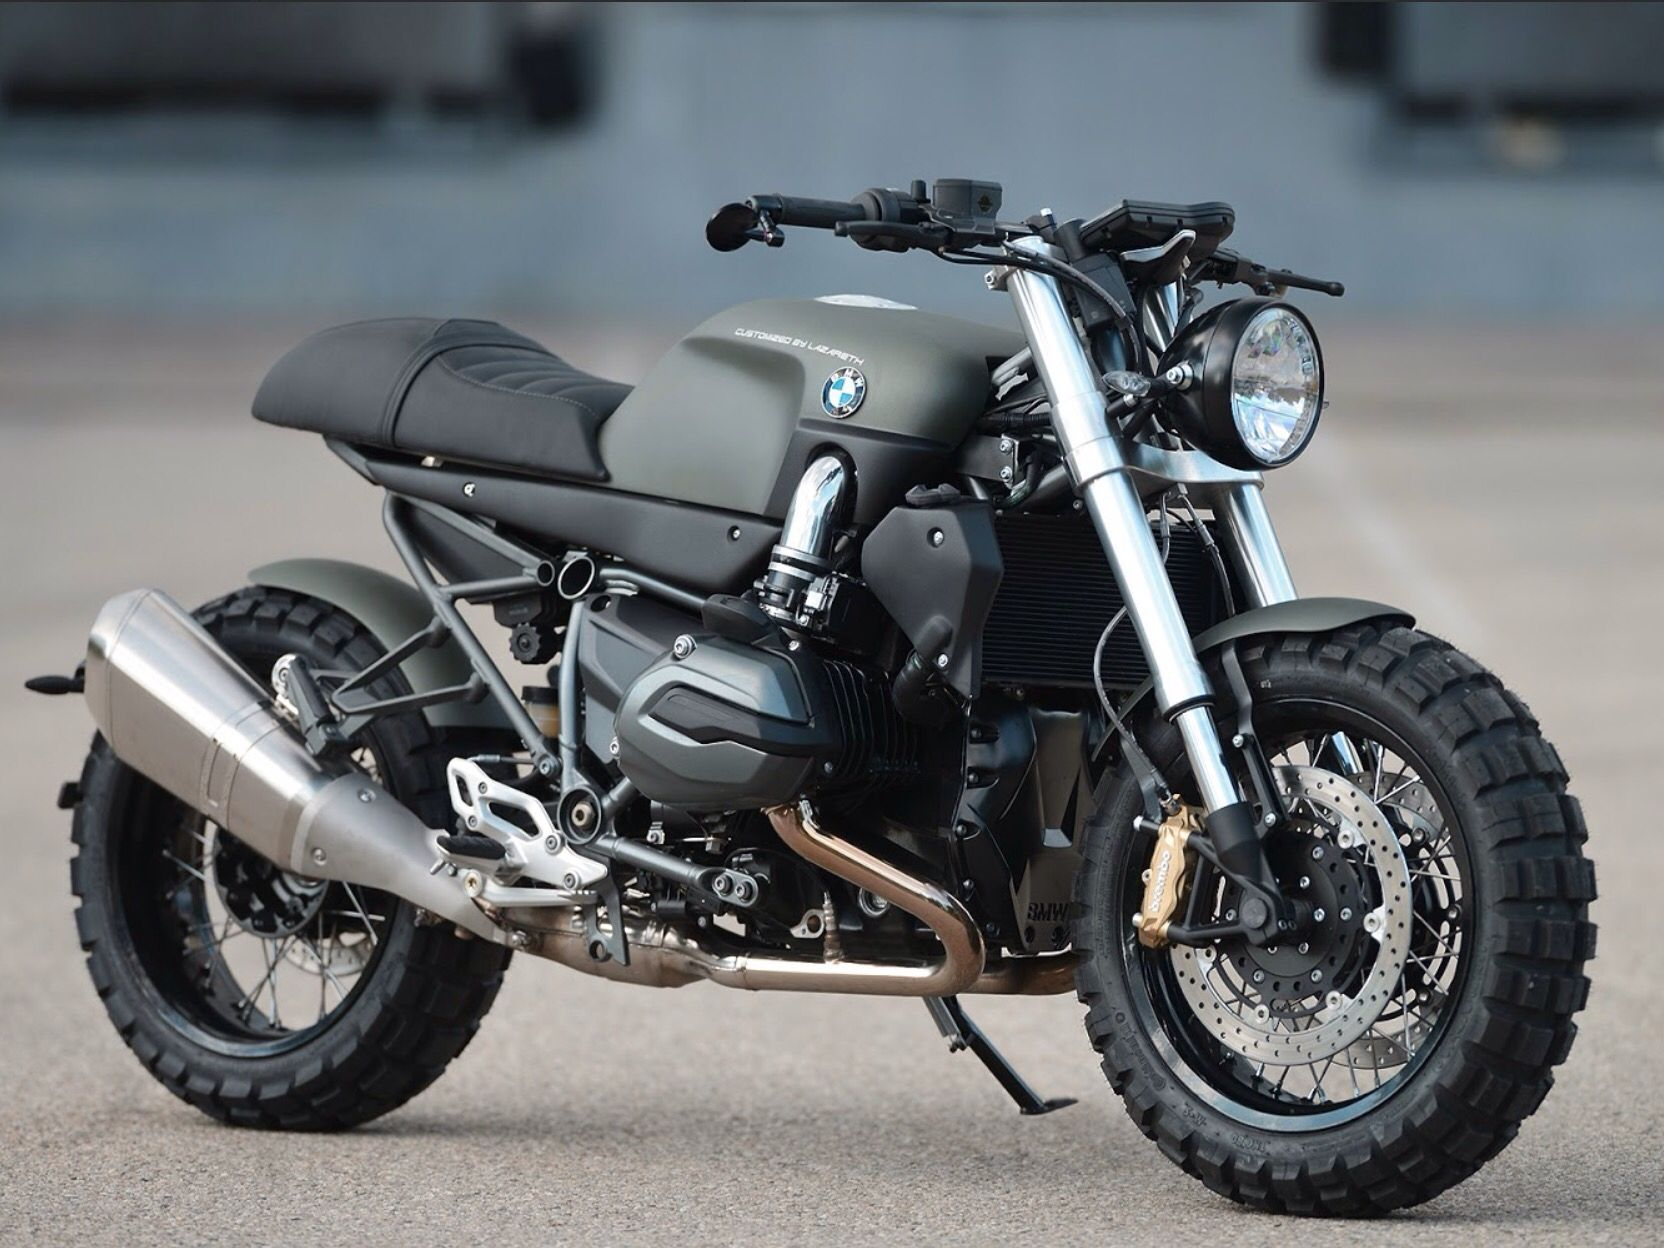 bmw r1200r scrambler 2015 motorr der bmw motorr der und bmw. Black Bedroom Furniture Sets. Home Design Ideas